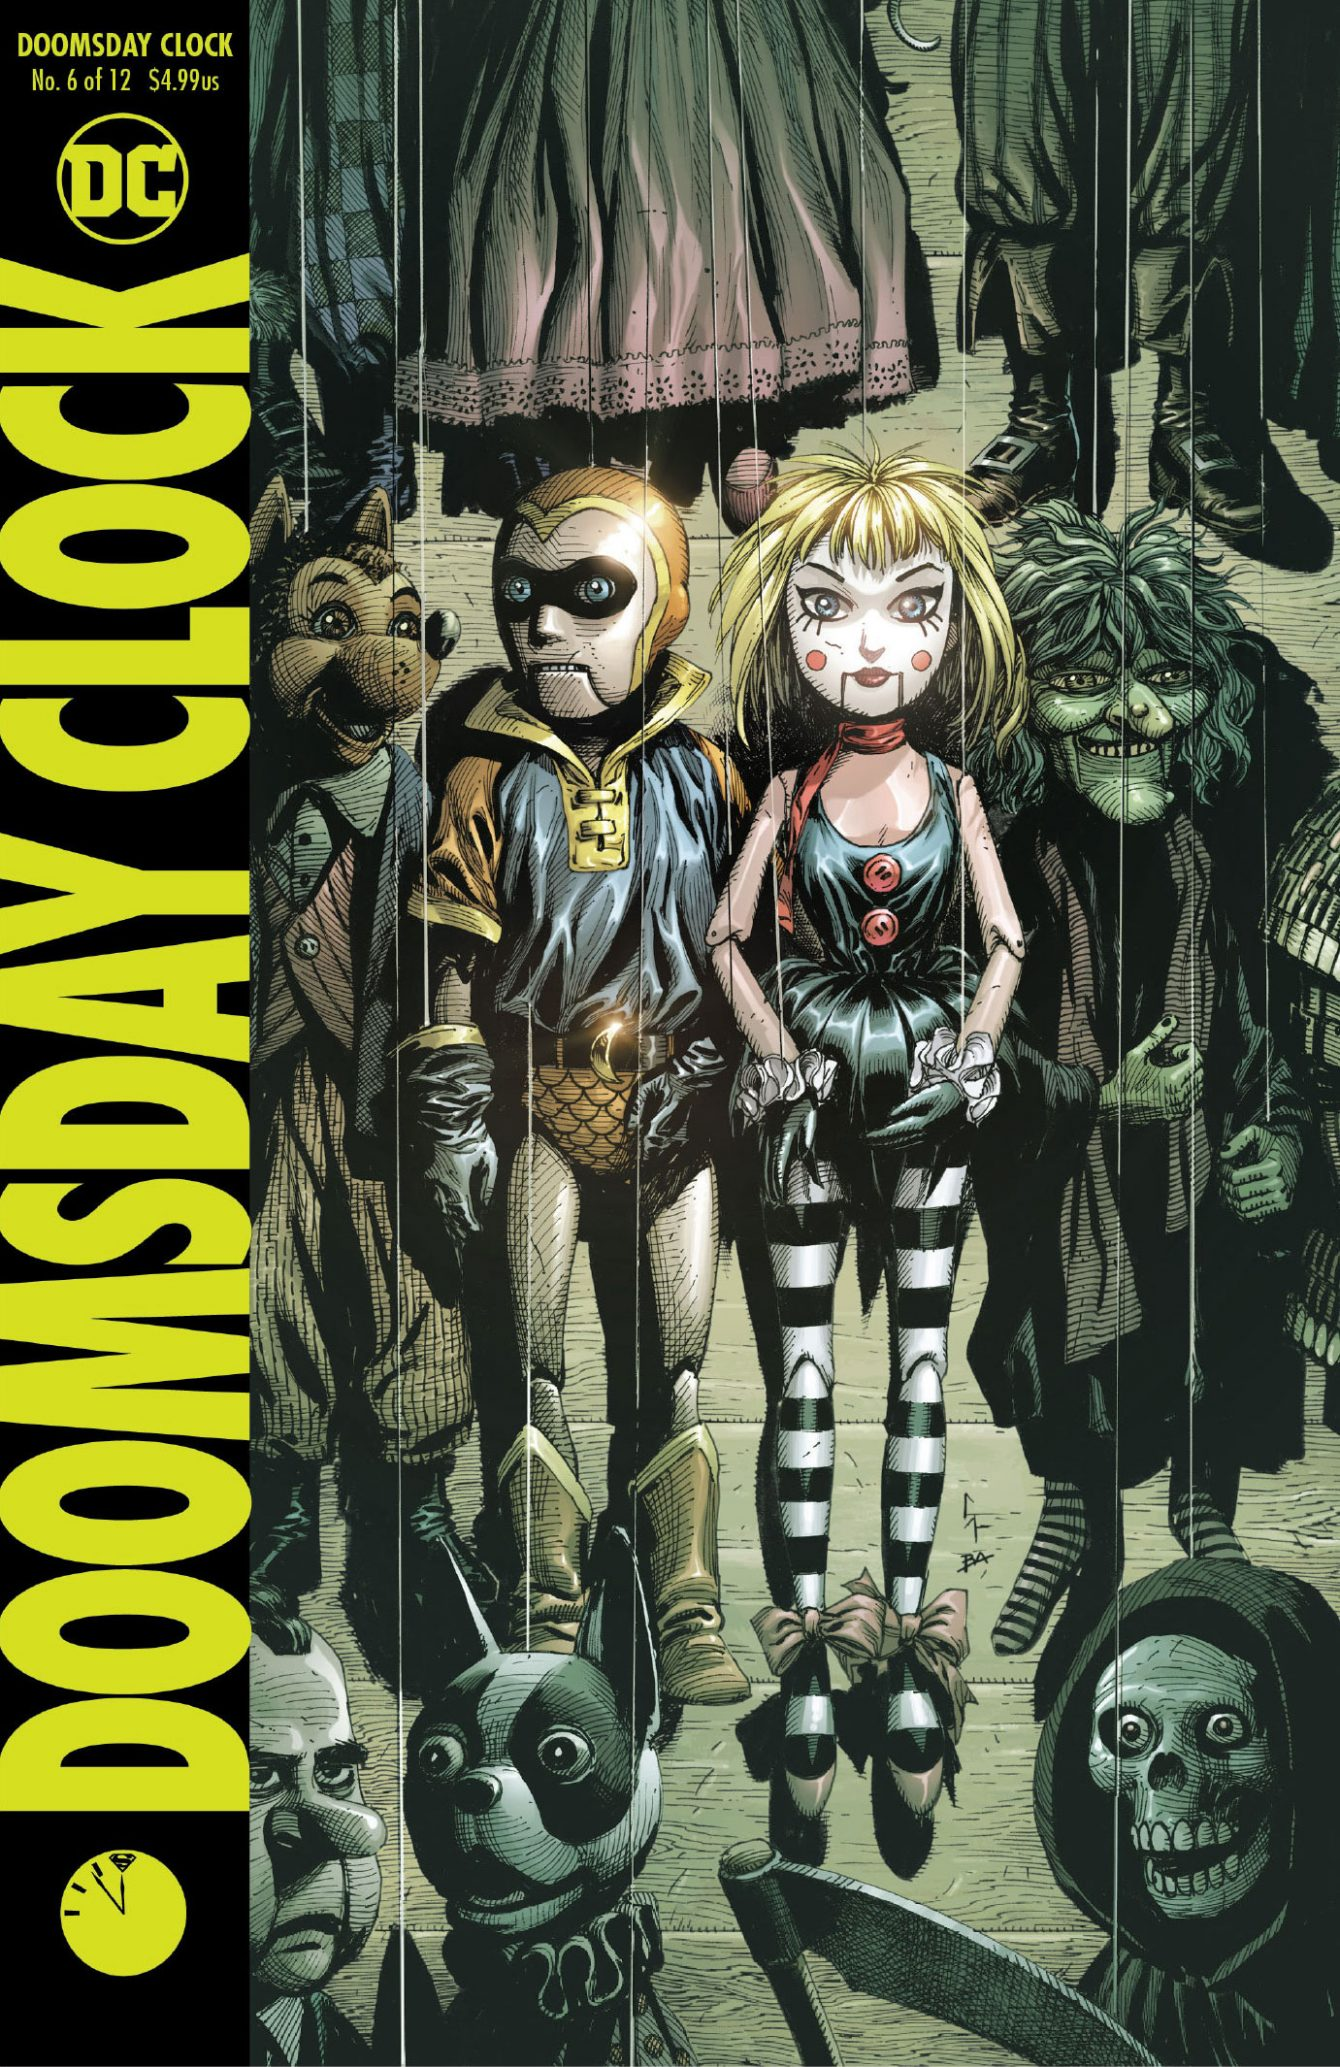 Doomsday Clock #6 Variant Cover - DC Comics